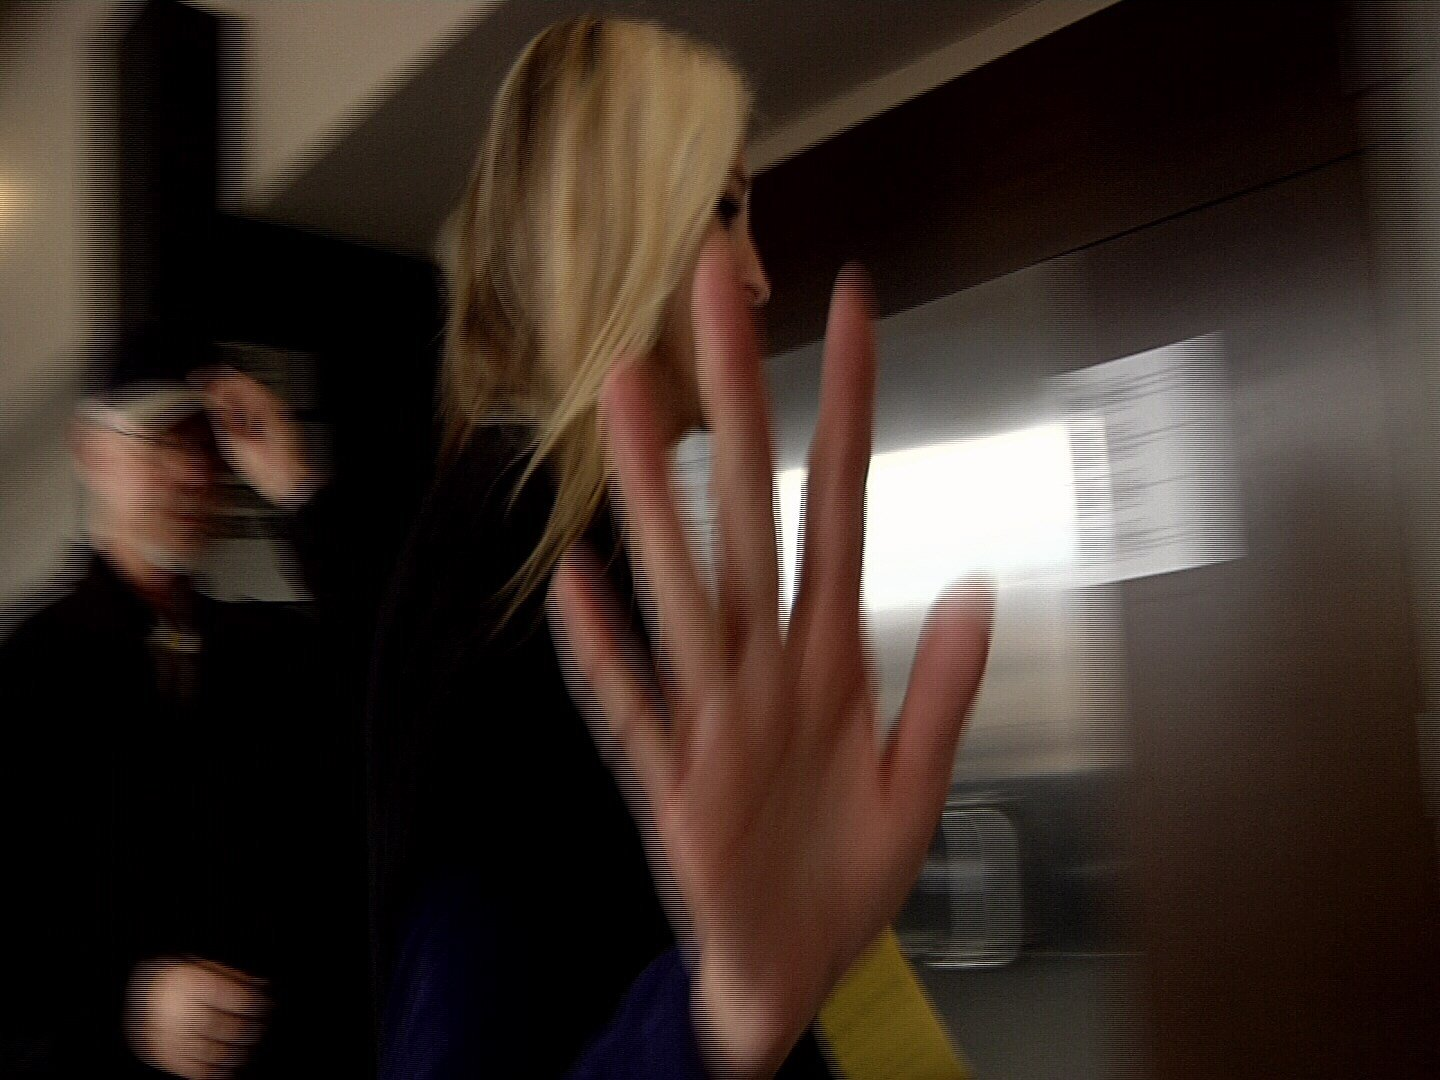 Holly Janette Dalton, 44, leaves the courtroom in Colorado Springs after being advised of the felony theft charge she faces